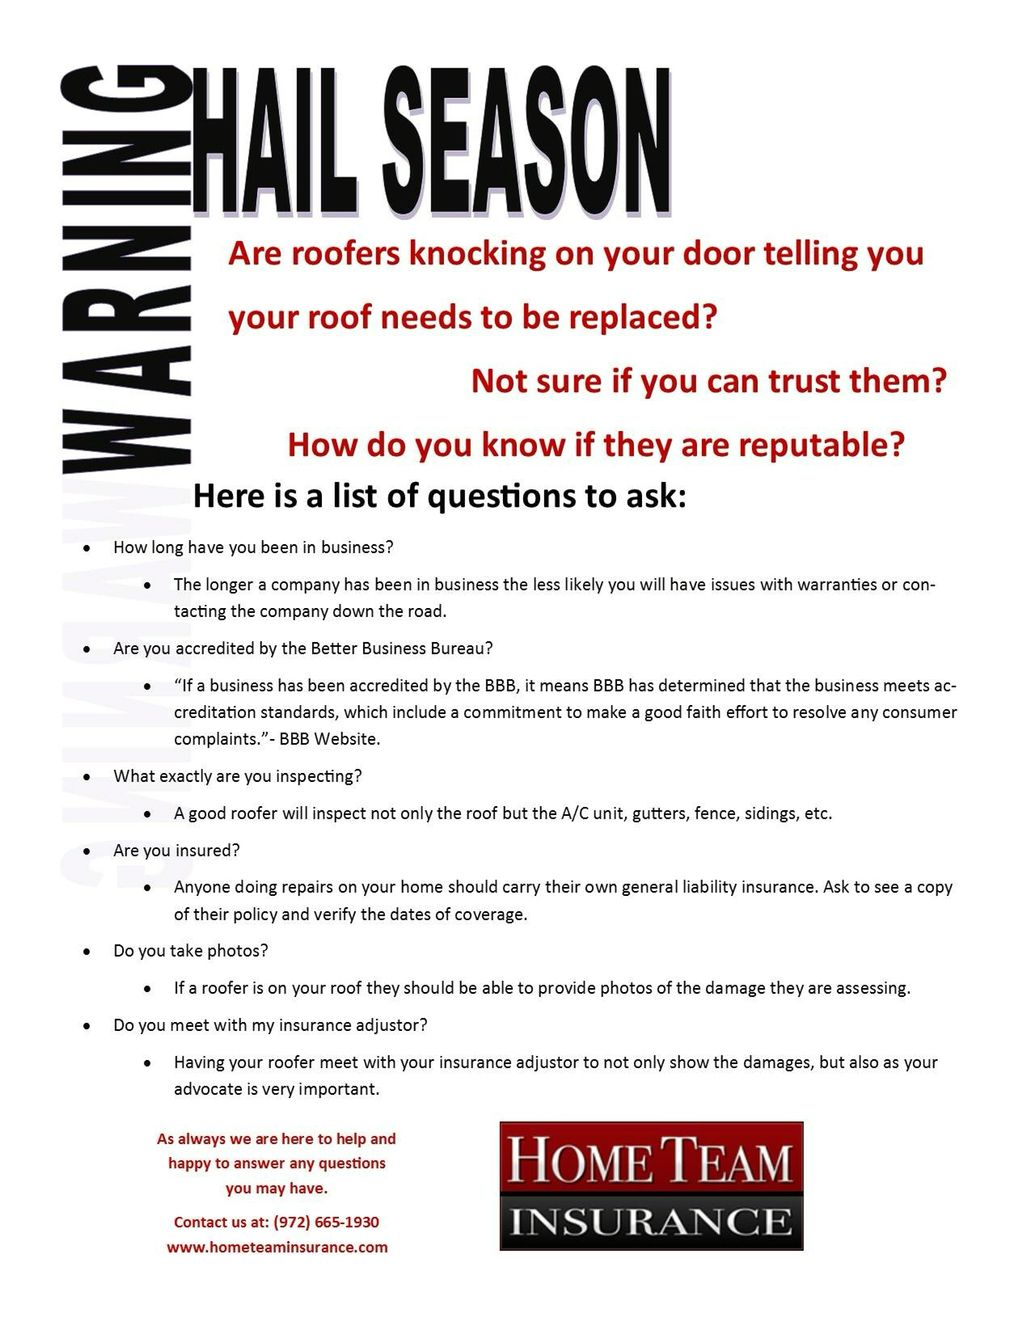 Preparing For Hail Season Insurance Claims Texas Real Estate